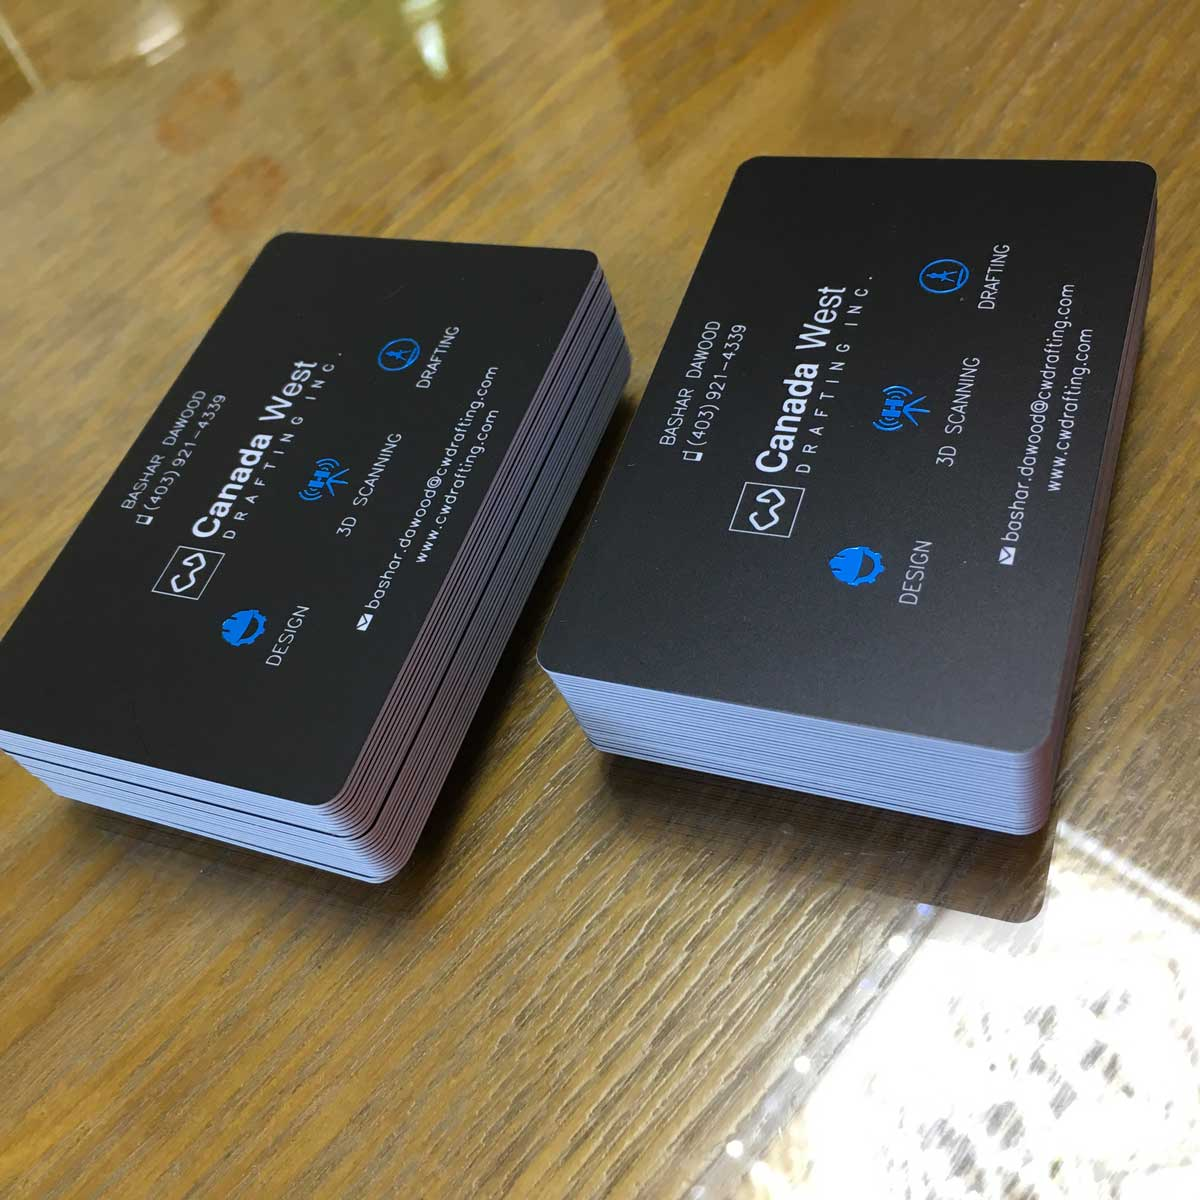 Plastic Card Printing - Membership, Gift Cards - Free Shipping